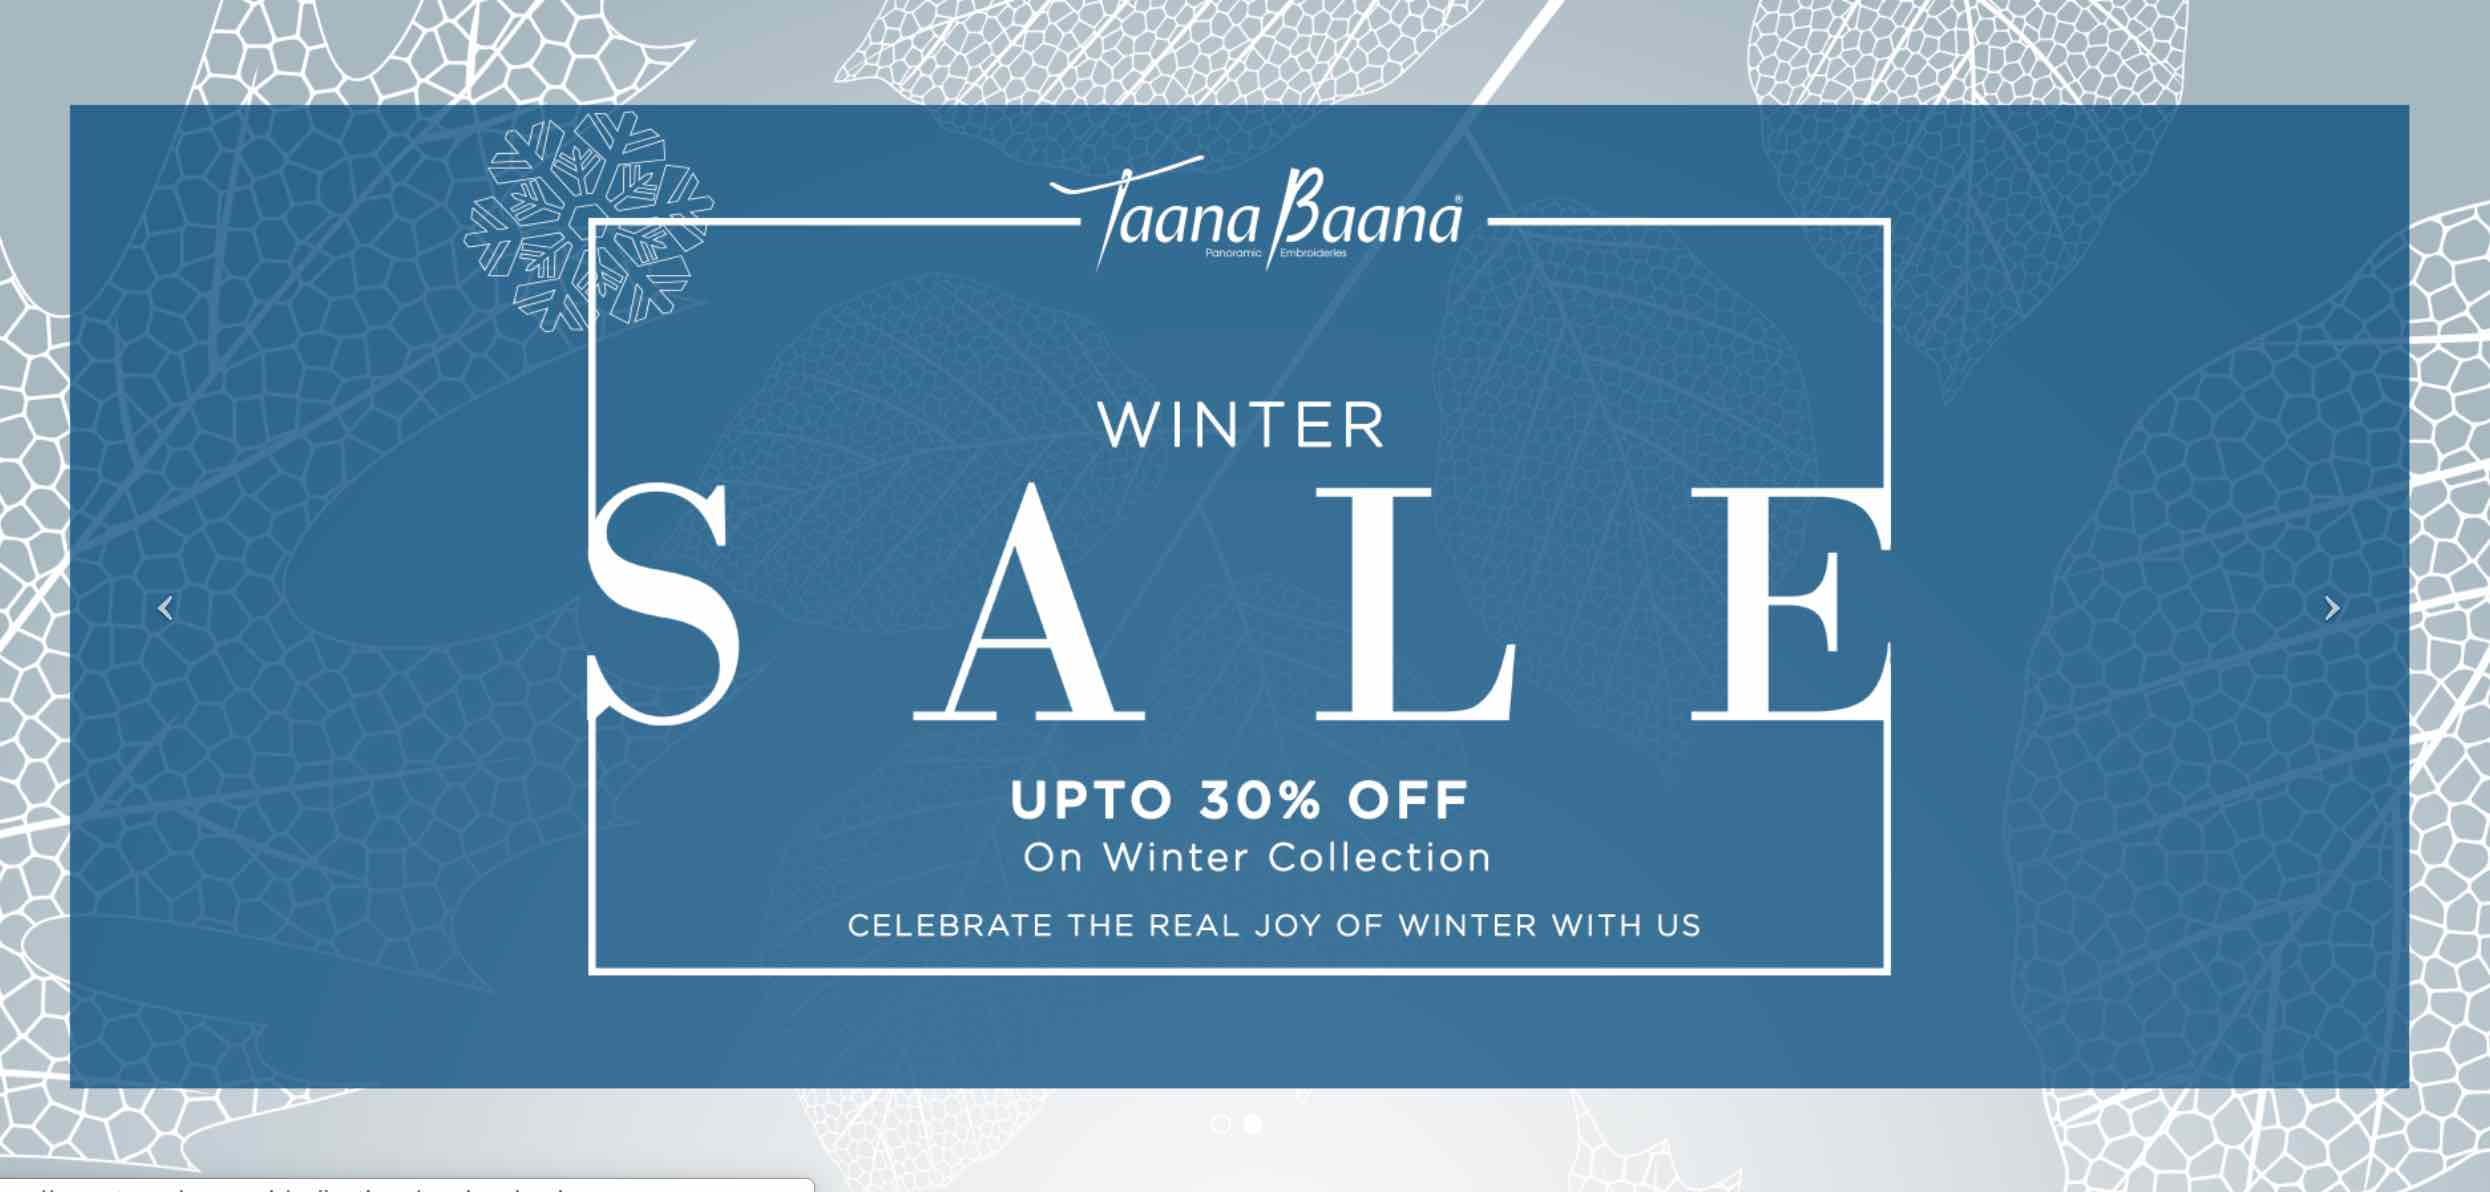 Taanabaana - Winter Sale